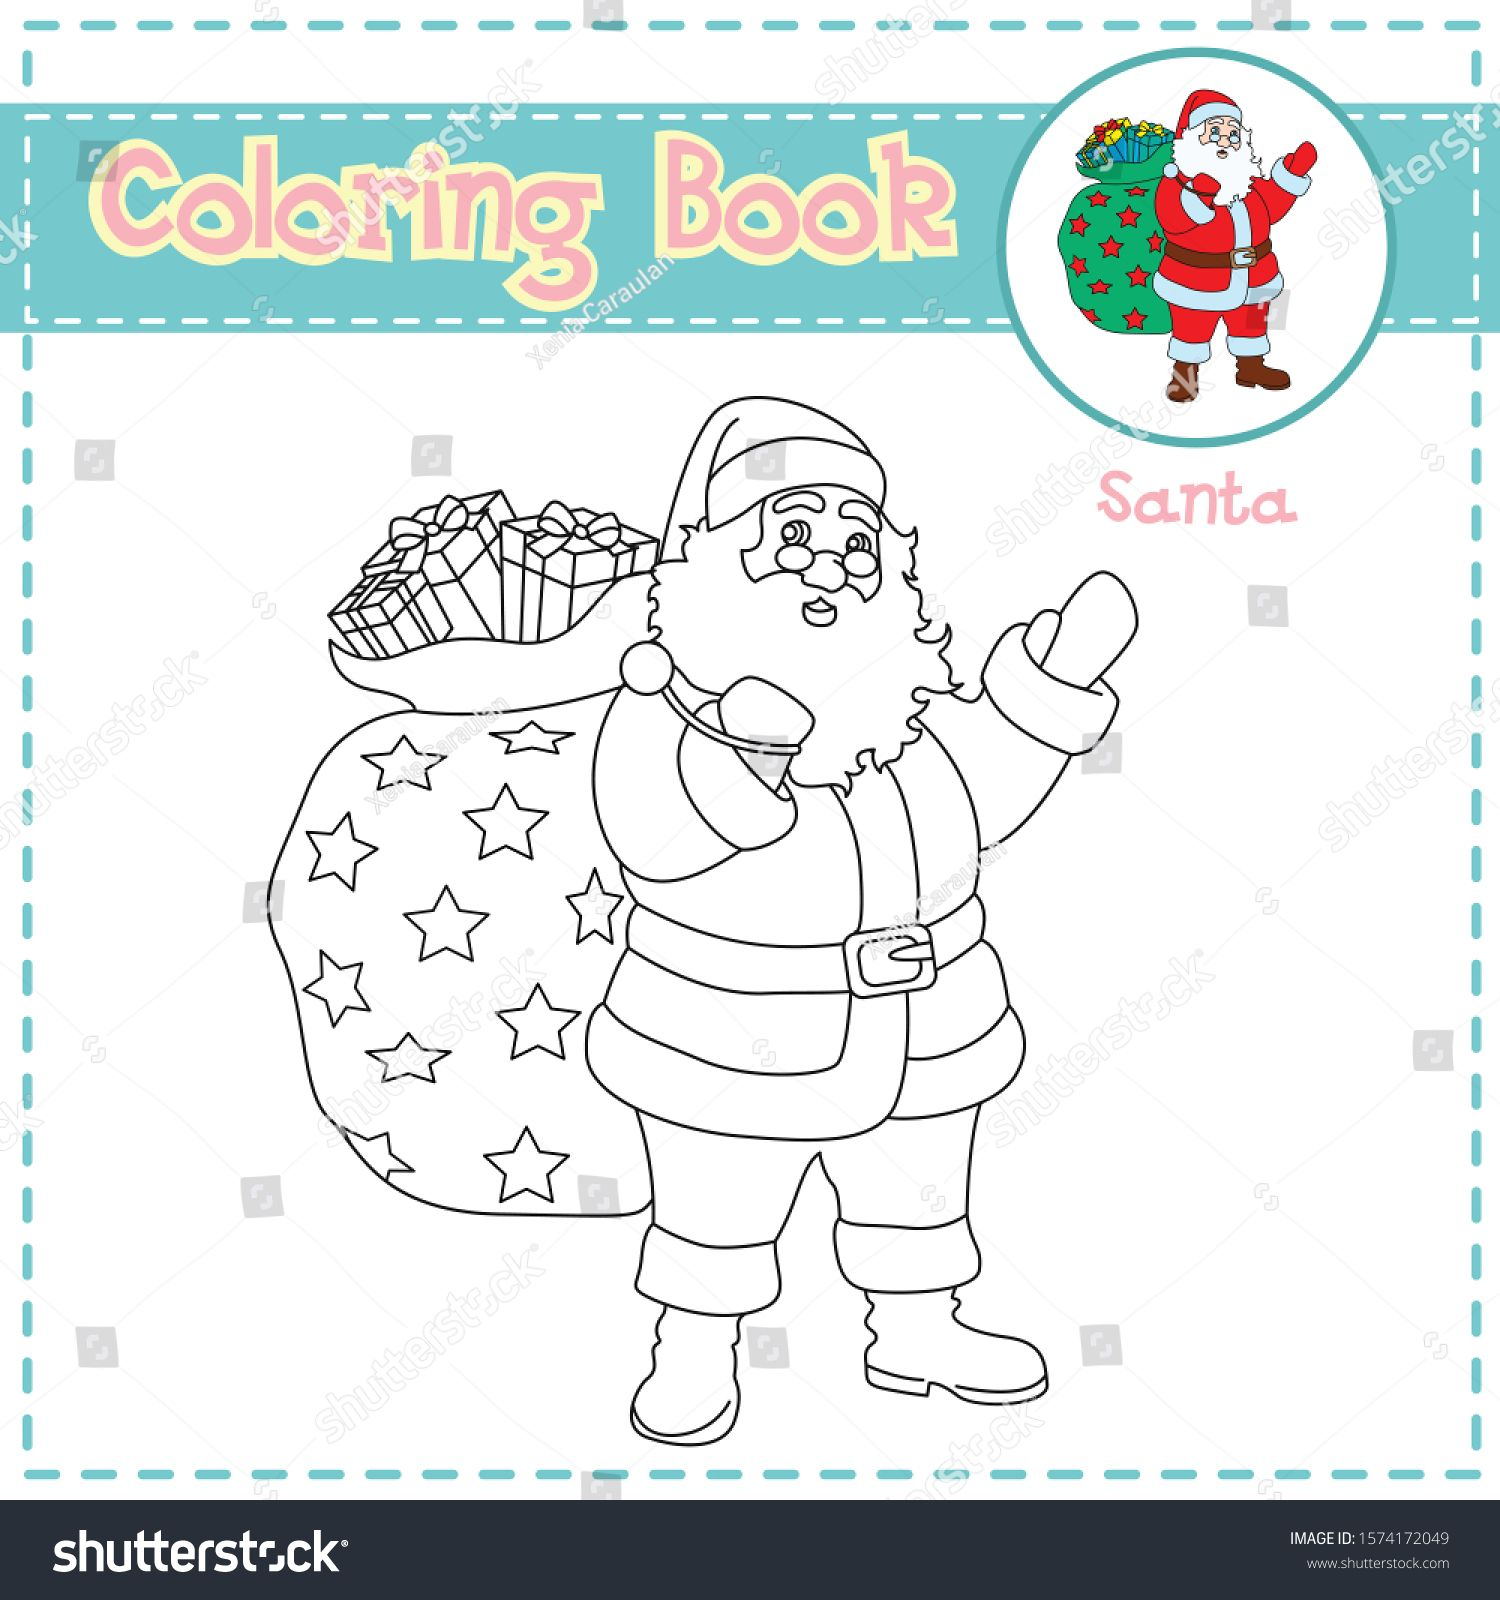 Christmas Coloring Page With Santa For Preschool Kids